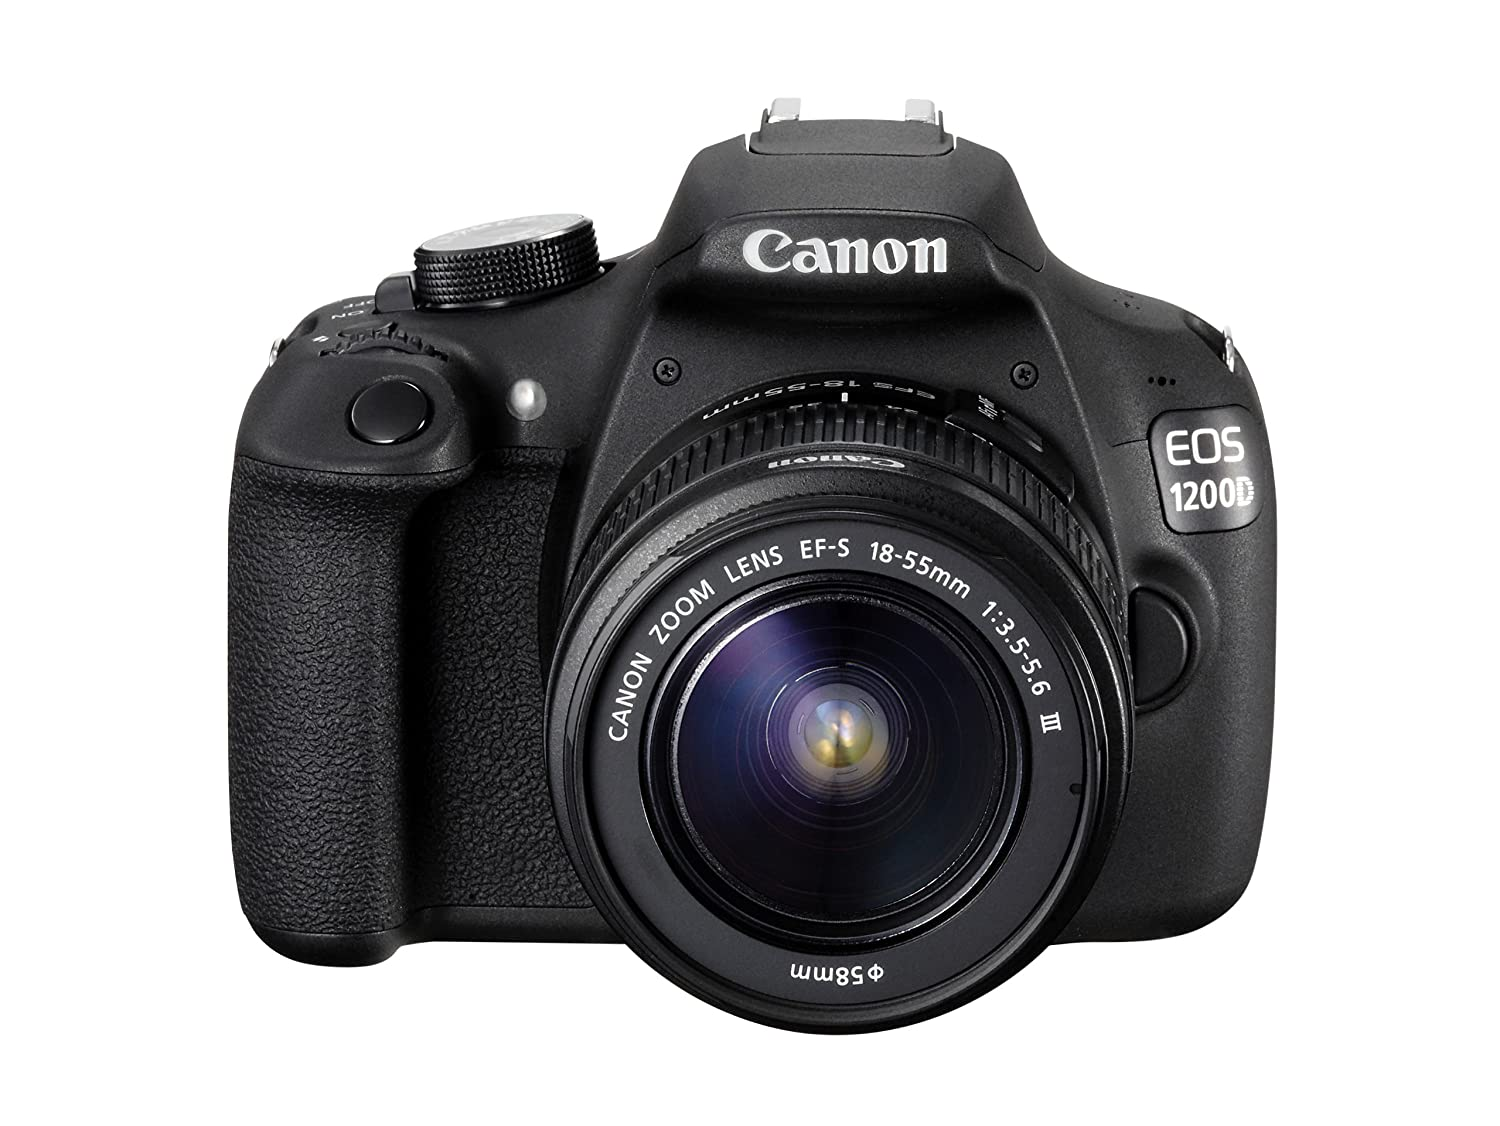 Camera Canon Eos 1100d 12mp Dslr Camera With 18-55mm Lens canon eos 1200d digital slr camera with ef s 18 55 mm f amazon co uk photo